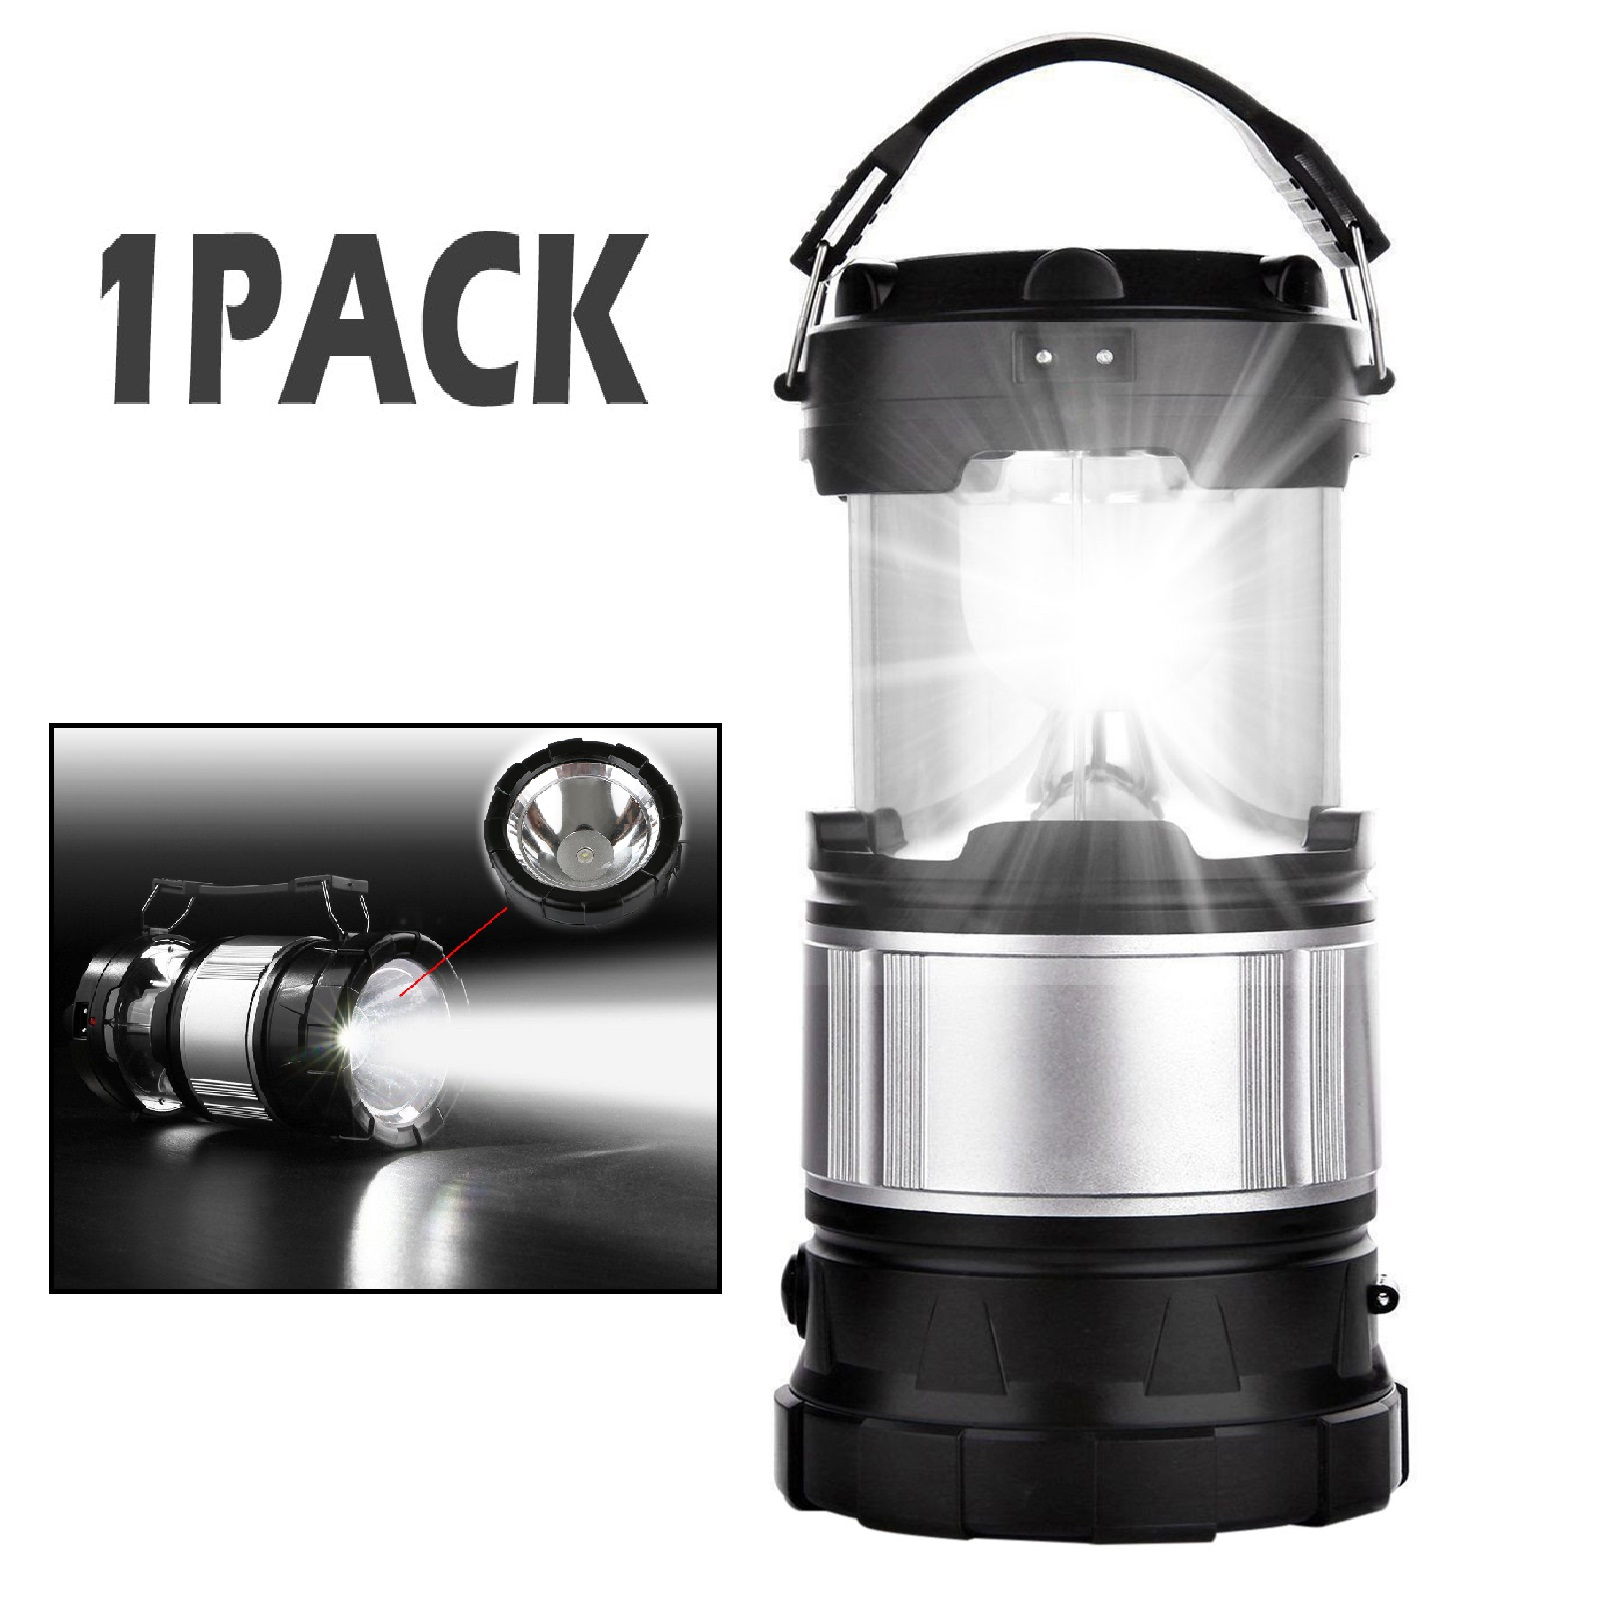 Rechargeable LED Camping Lantern Outdoor Tent Lights Power Bank Phone Charging